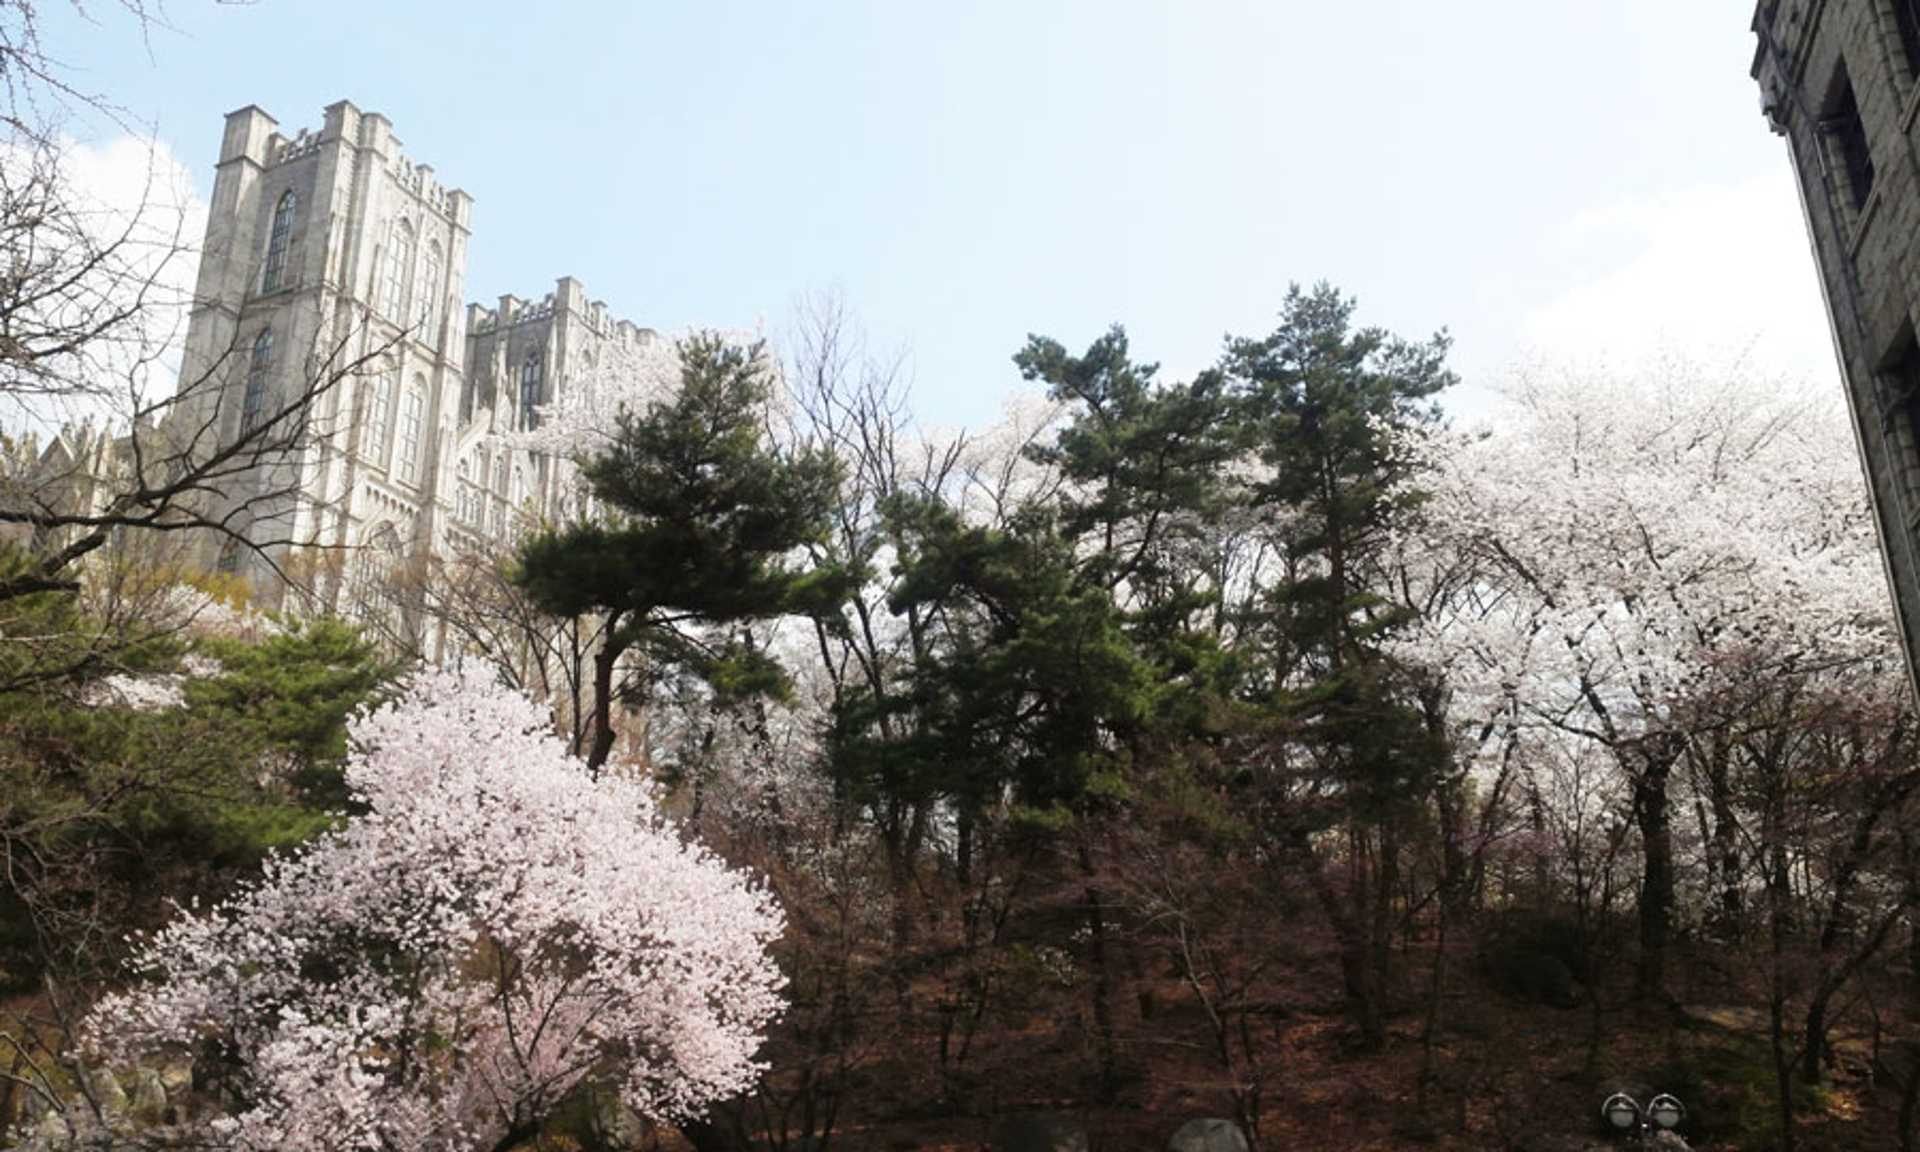 kyung-hee-university-seoul-spring-cherry-blossoms